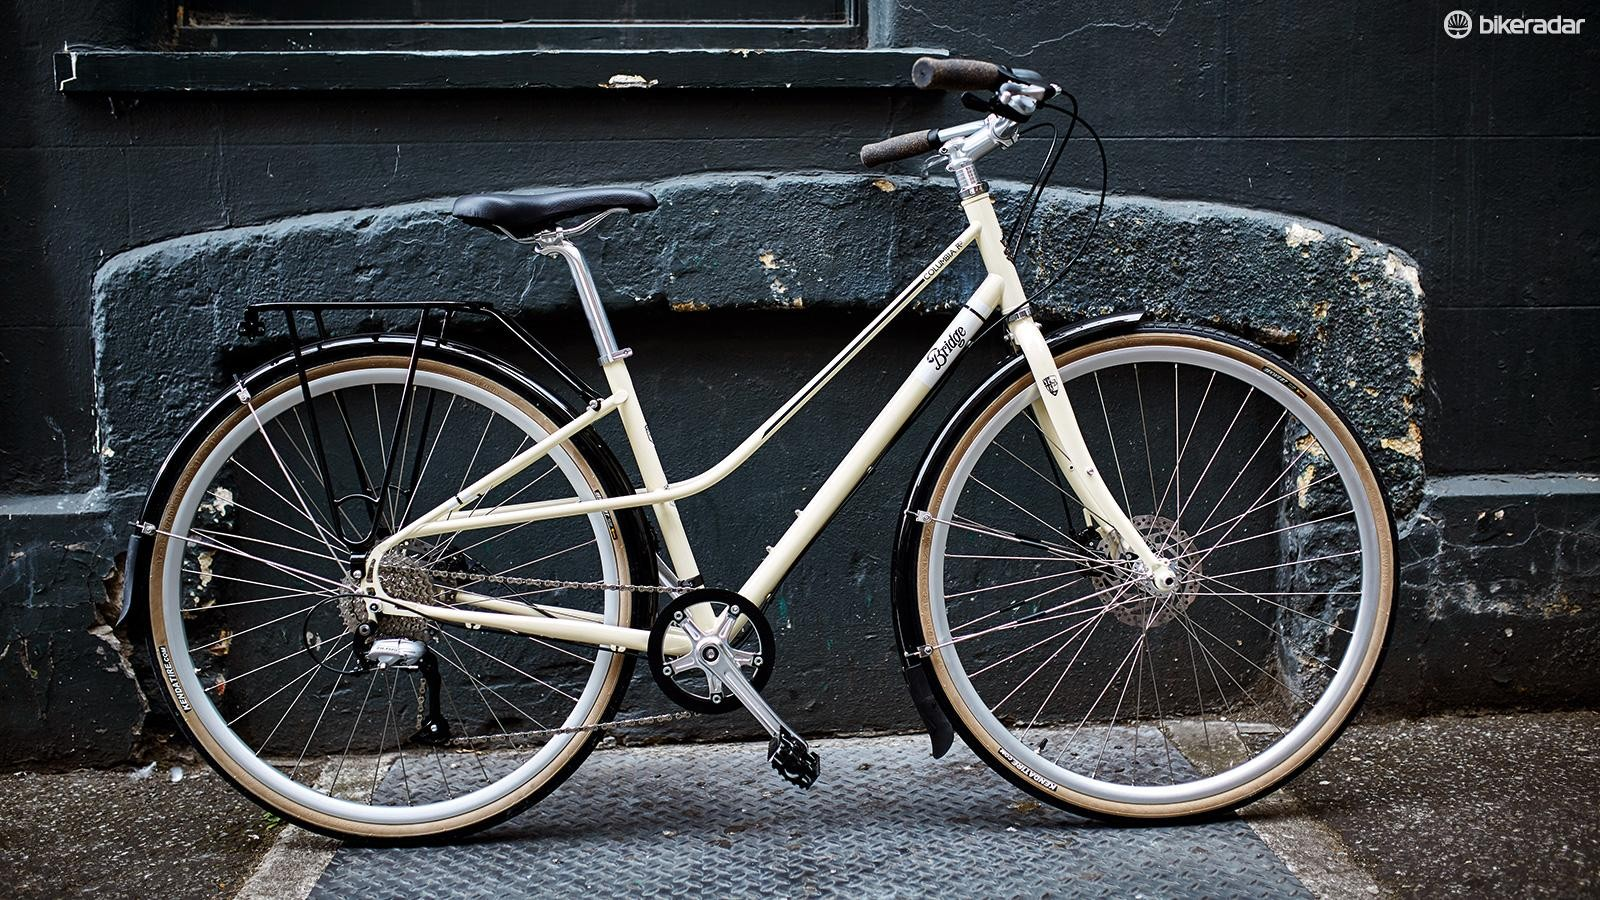 The Genesis Columbia Road is a city bike with a step-through frame